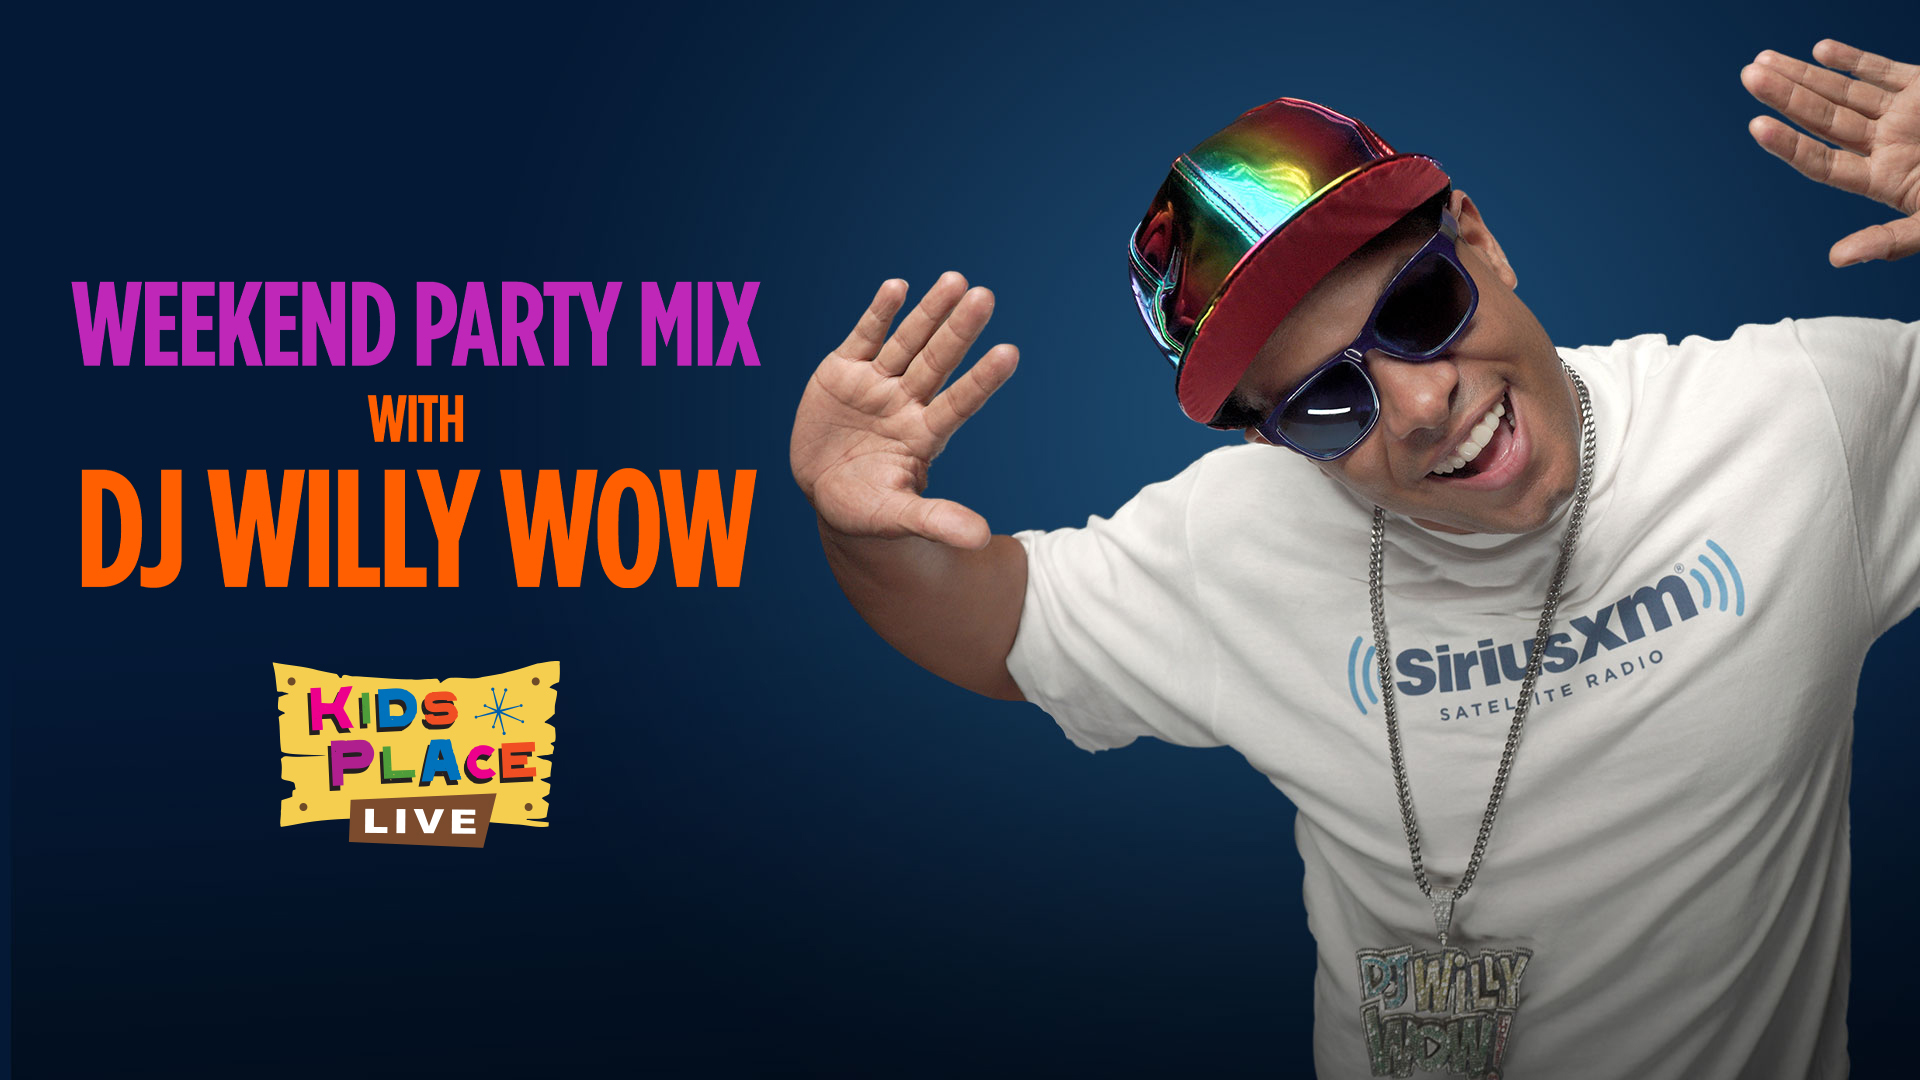 Kick off your weekend with a new dance party series on SiriusXM's Kids Place Live